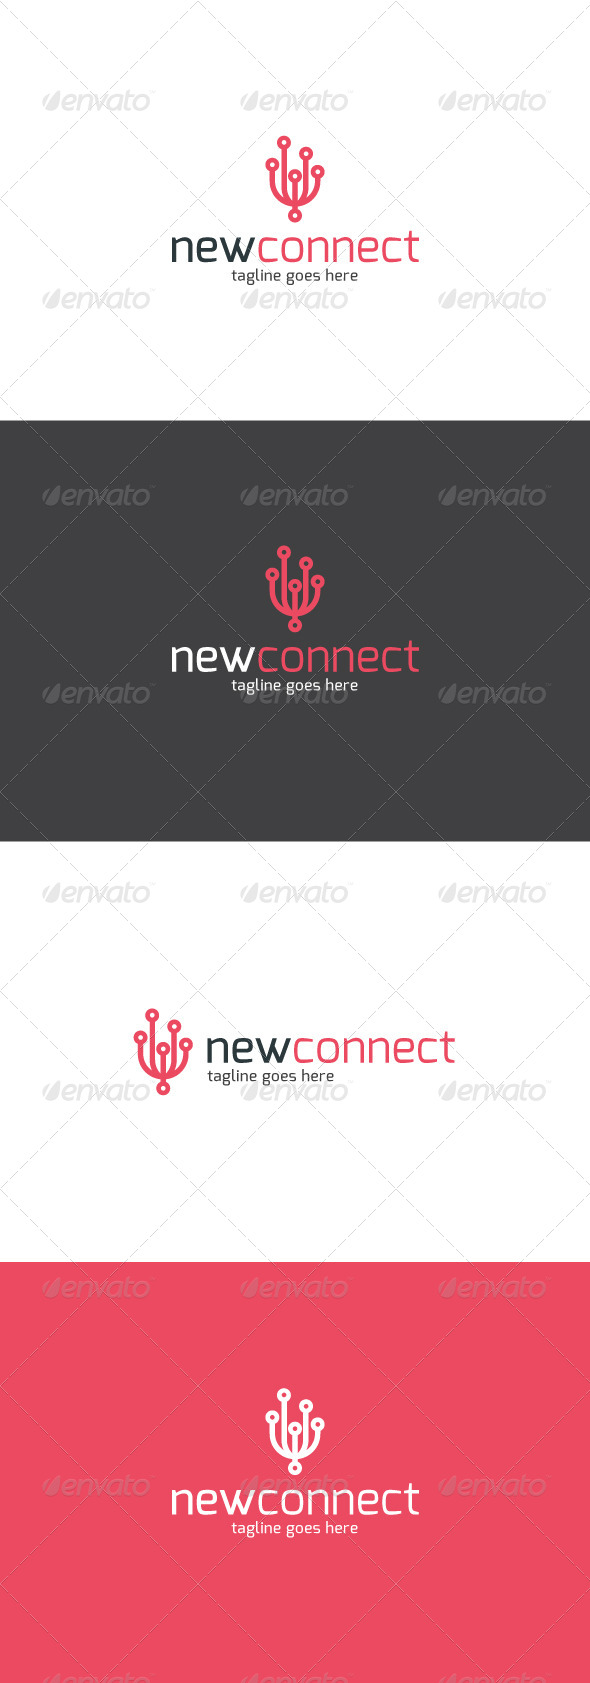 GraphicRiver New Connect Logo 7845828